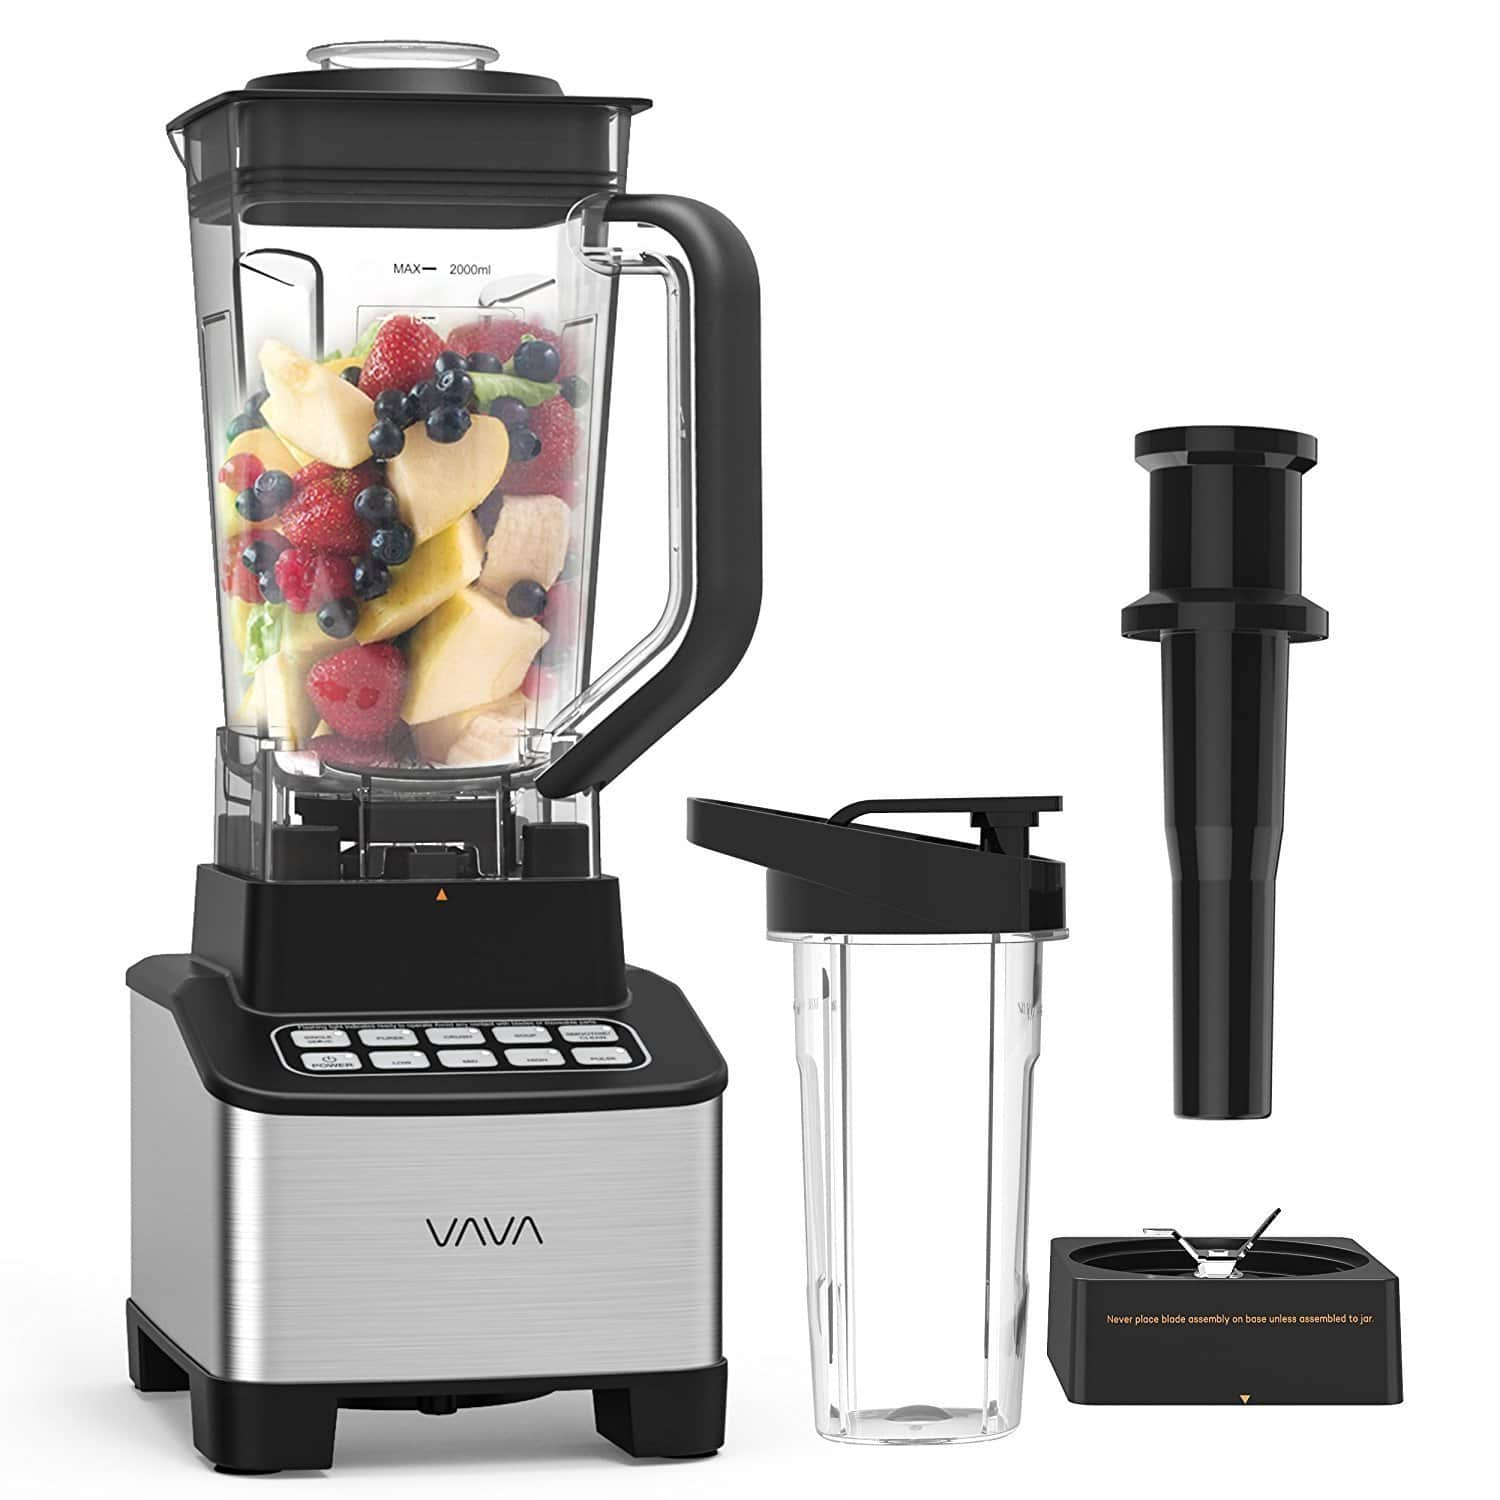 VAVA Smoothie Blender, 1200W Professional Blender for Shakes and Smoothies with 68oz Jar & Personal 20oz Blender Bottle, BPA Free, High Speed - $47.99 AC + FS